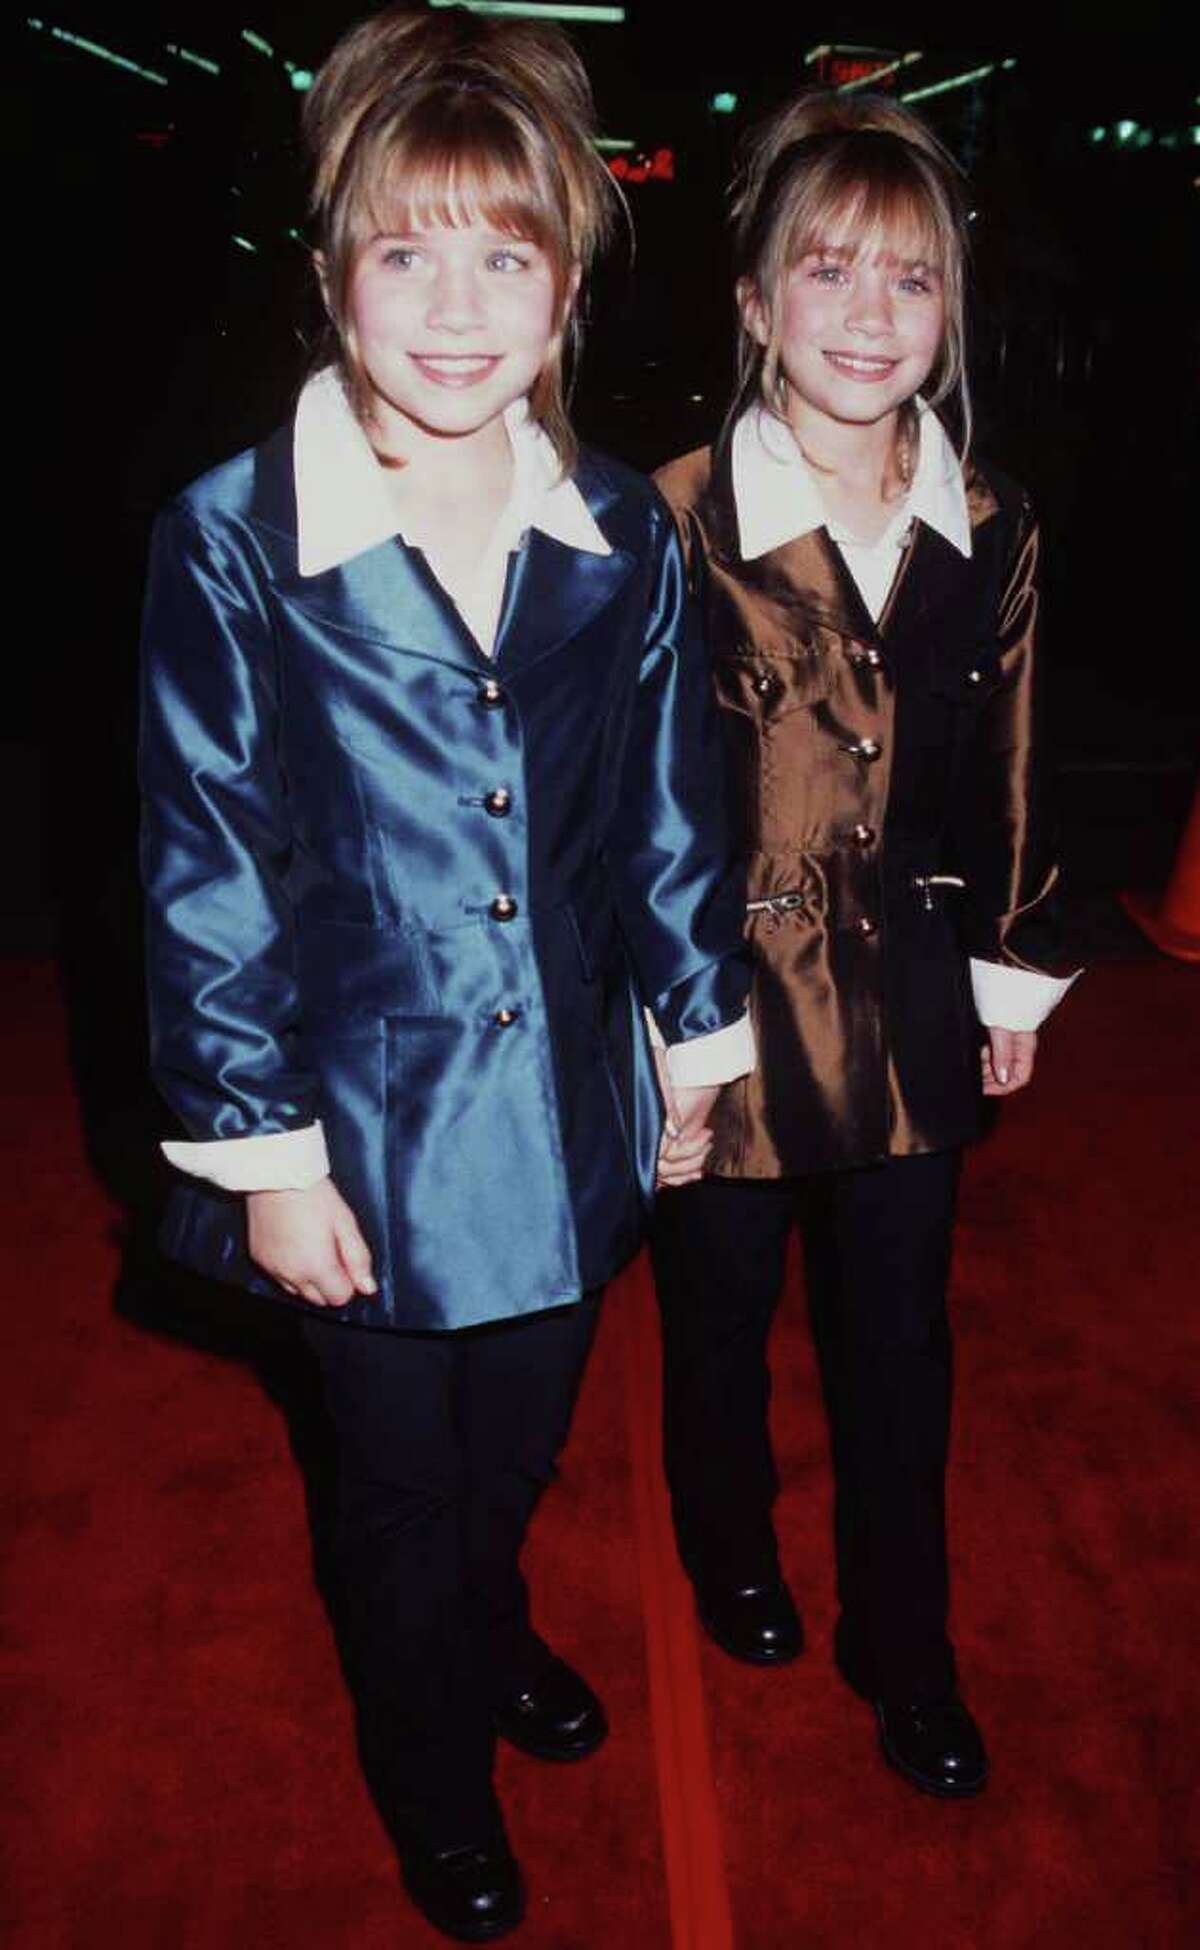 The Olsen twins at the premiere of